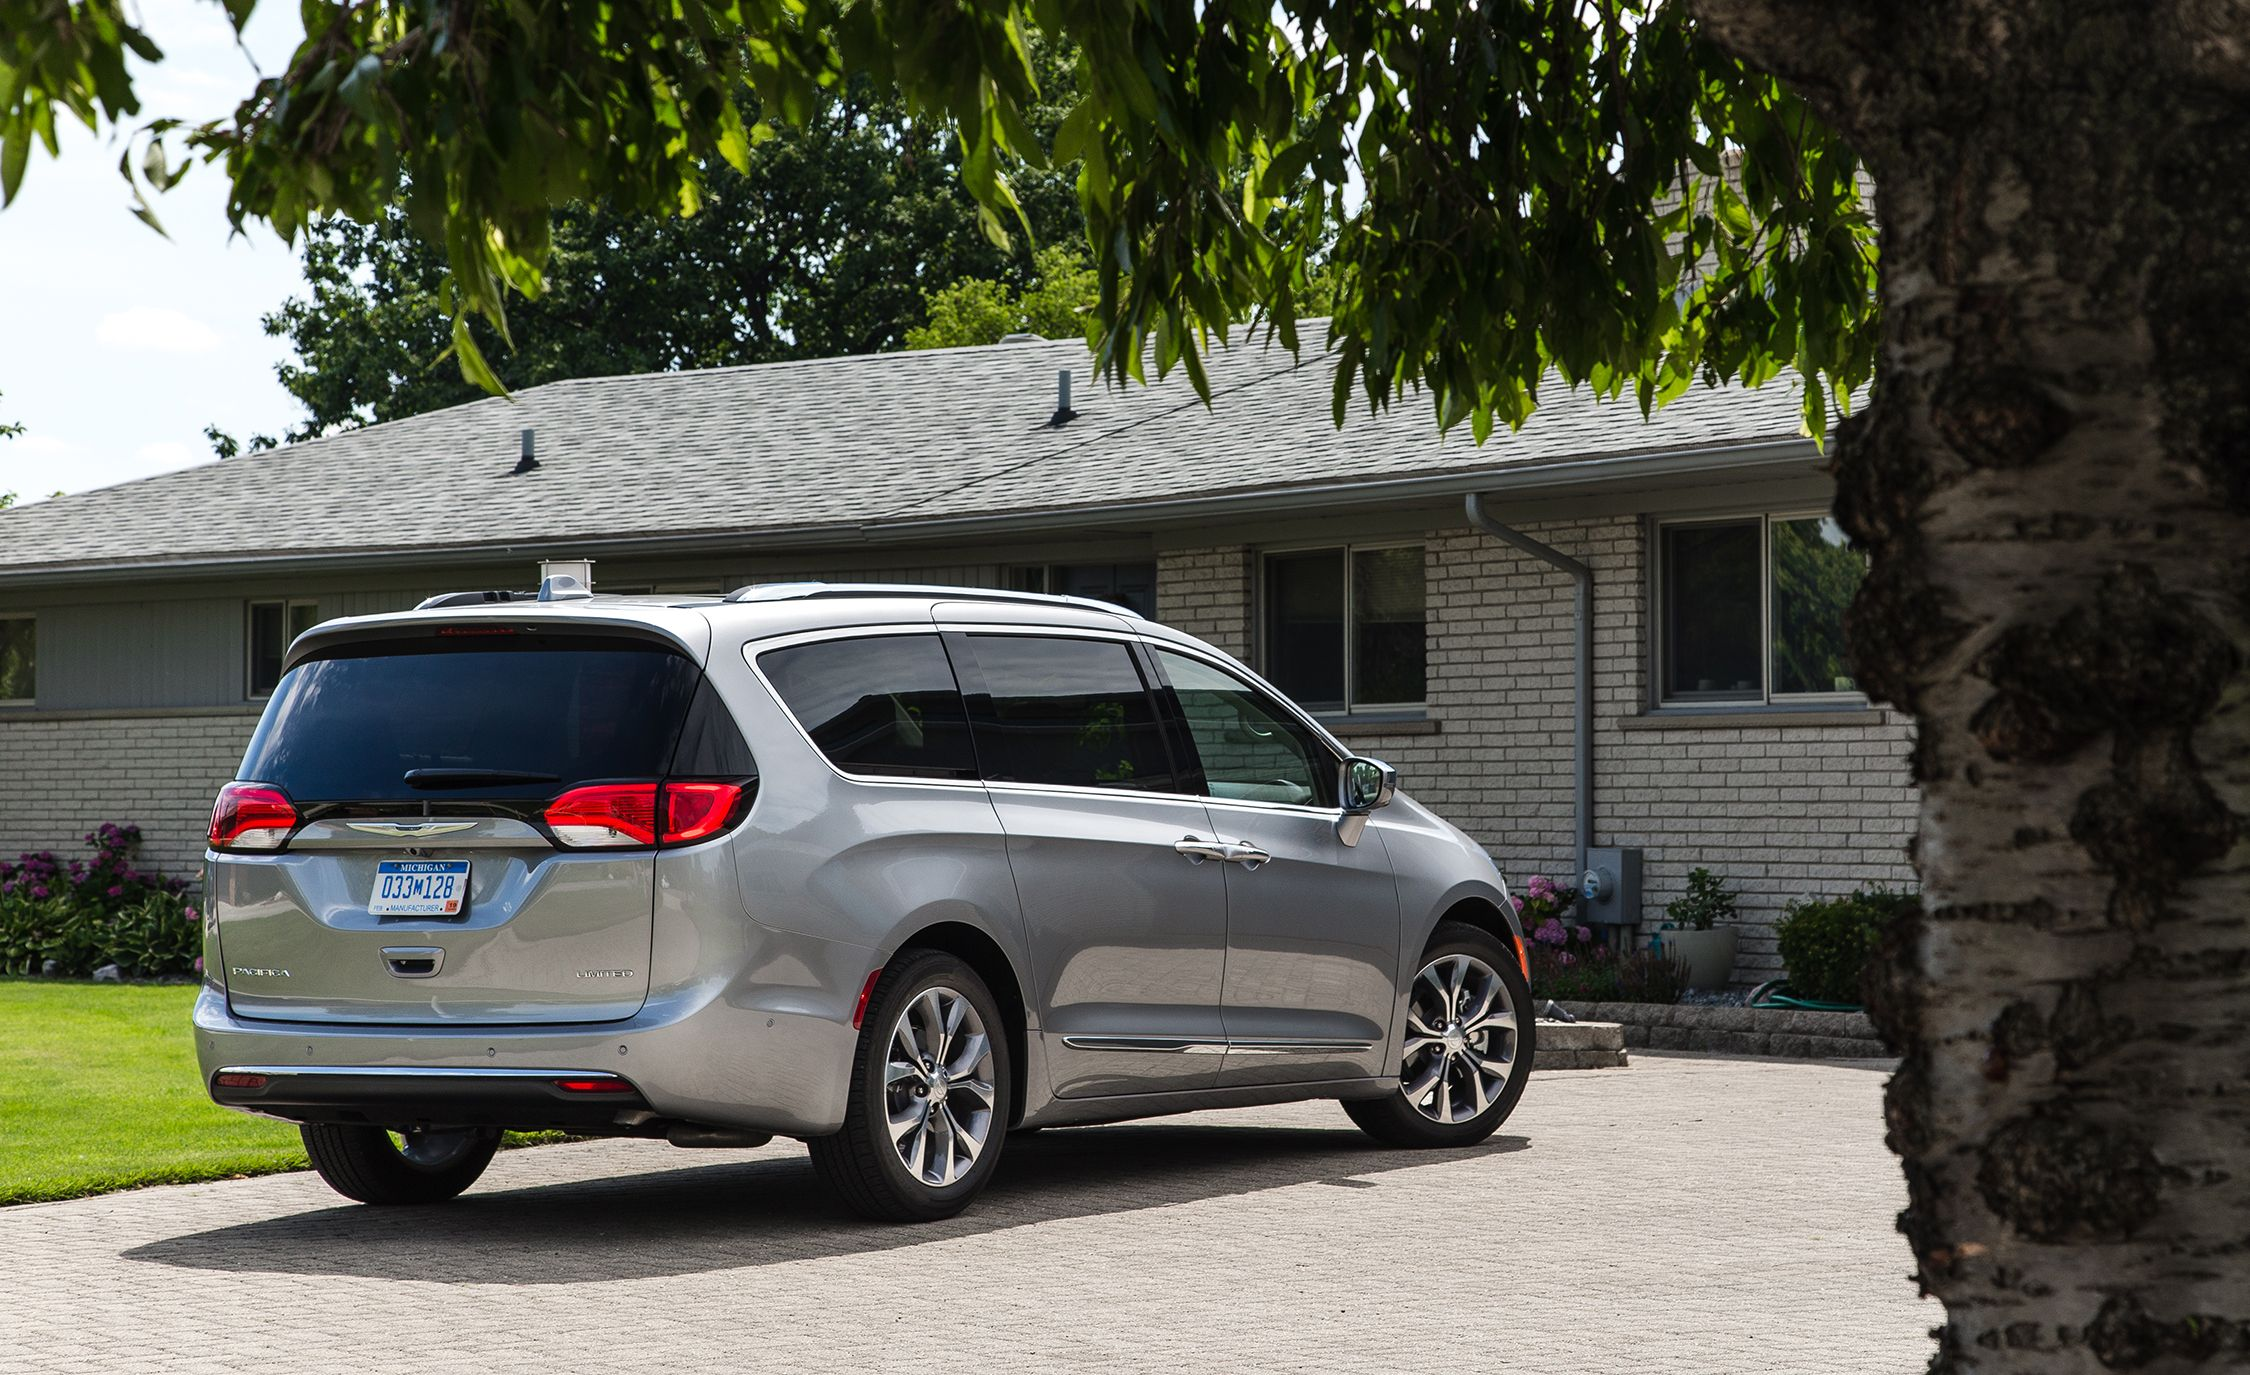 2017 chrysler pacifica cargo space and storage review car and driver rh caranddriver com Chrysler Pacifica Ignition Switch Housing 2004 Chrysler Pacifica Fuse Box Location